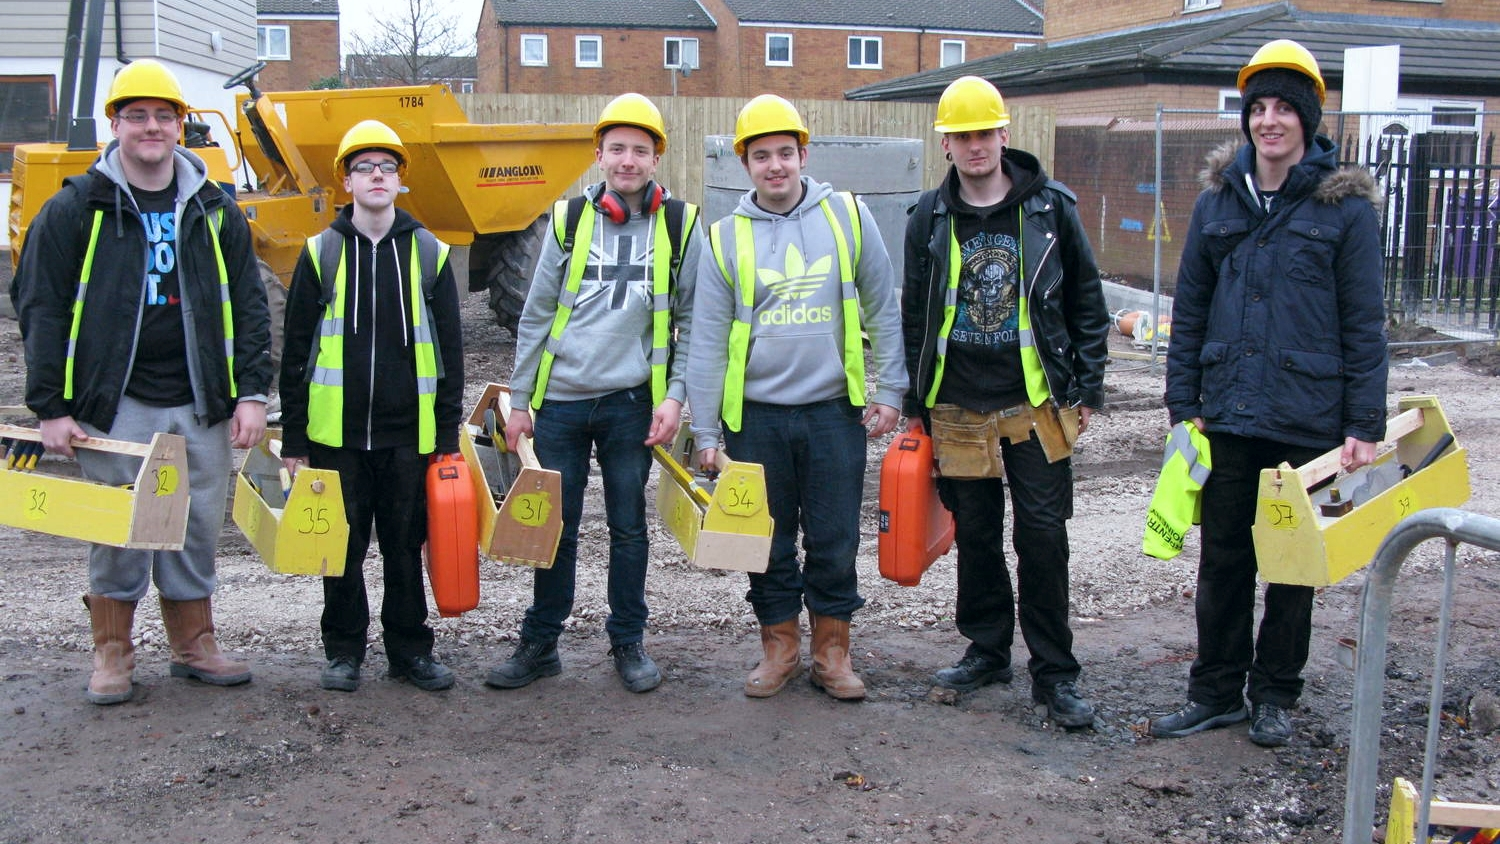 Joinery students from Hugh Baird College